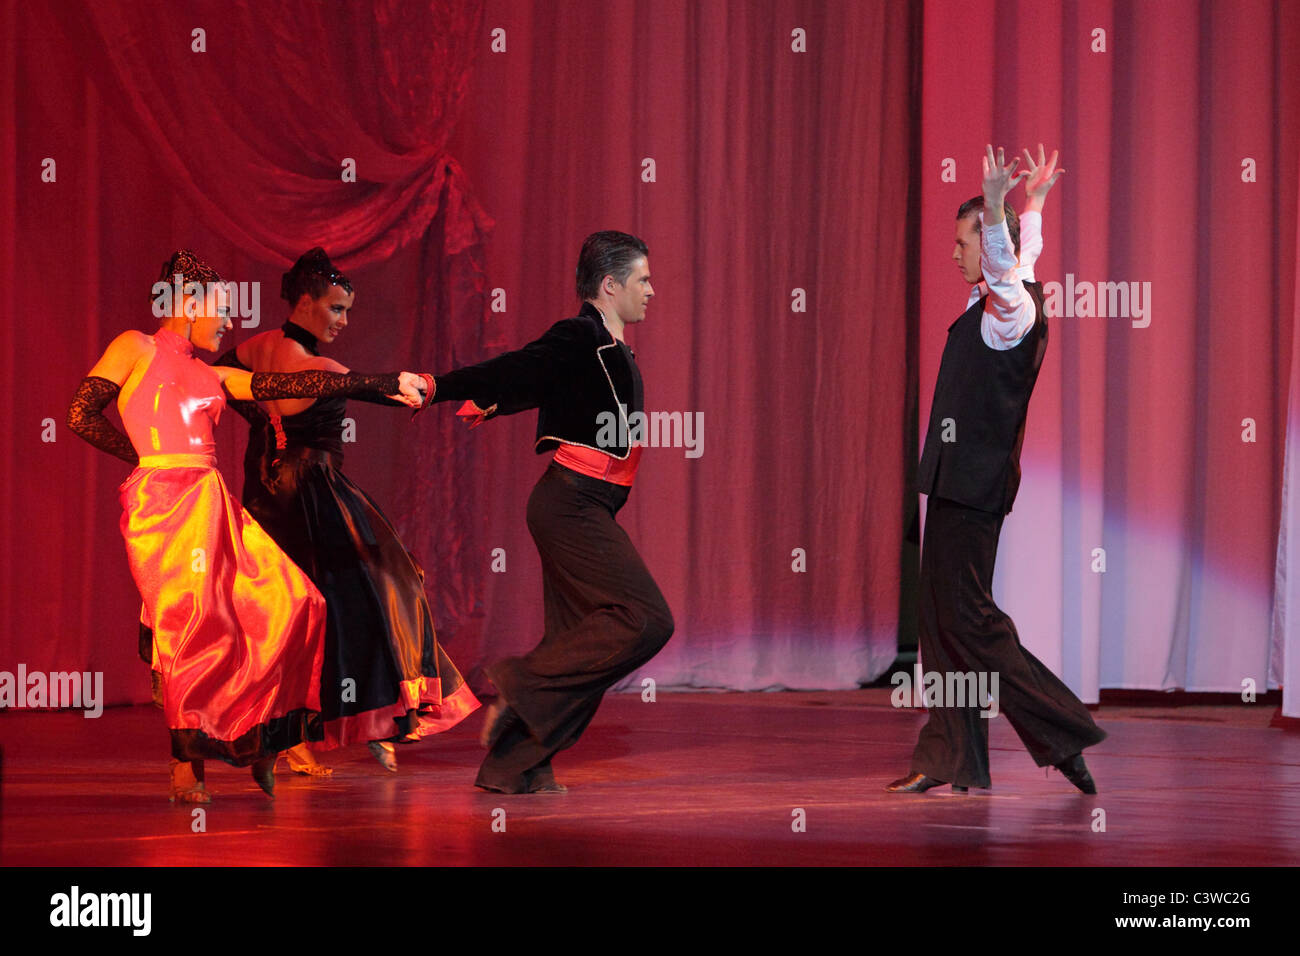 Two girls and two boys dancing flamenco - Stock Image